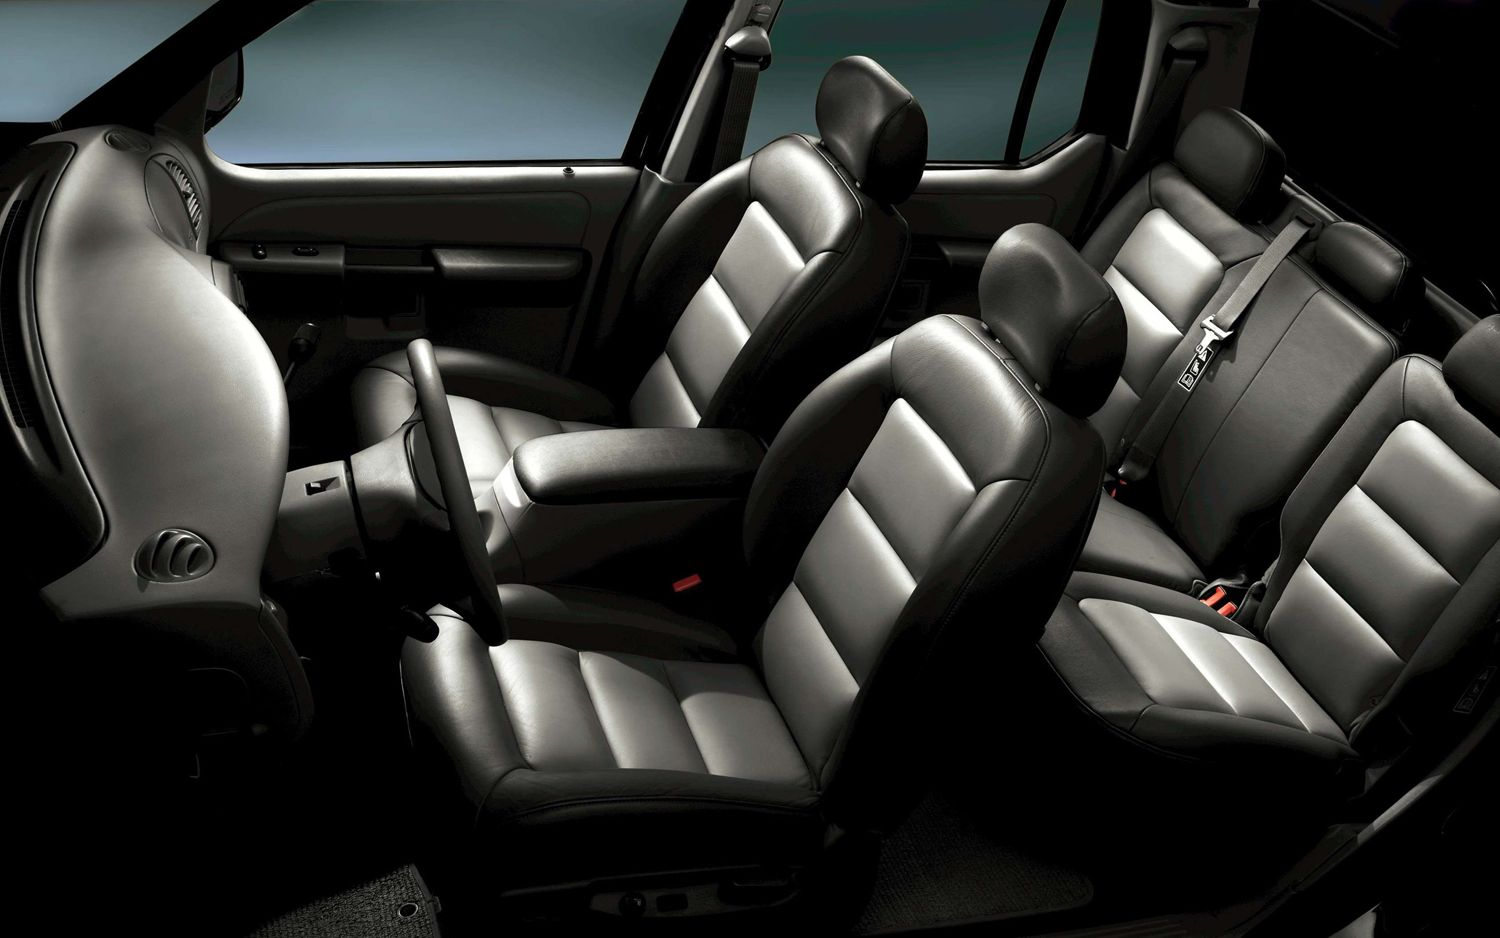 2003 Ford Explorer Sport Trac Interior View (With images